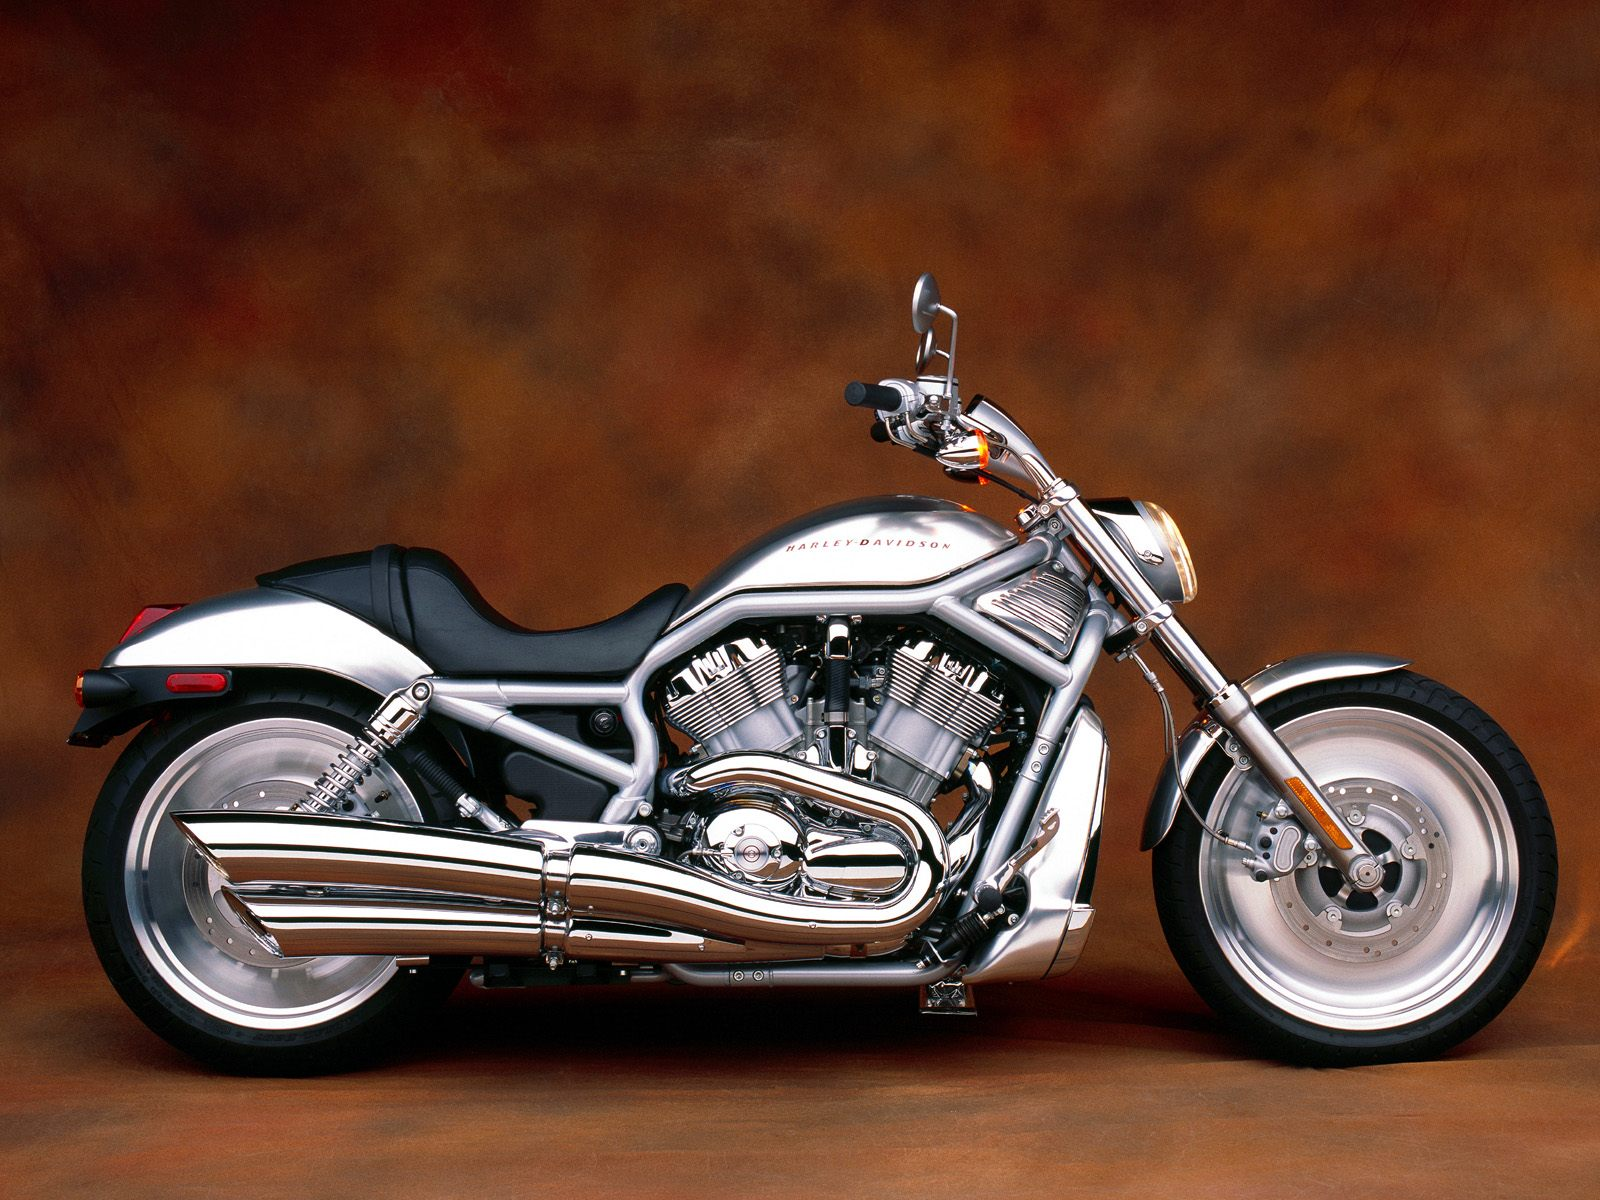 MOTORCYCLES - MOTORCYCLE NEWS AND REVIEWS: HARLEY DAVIDSON V-ROD